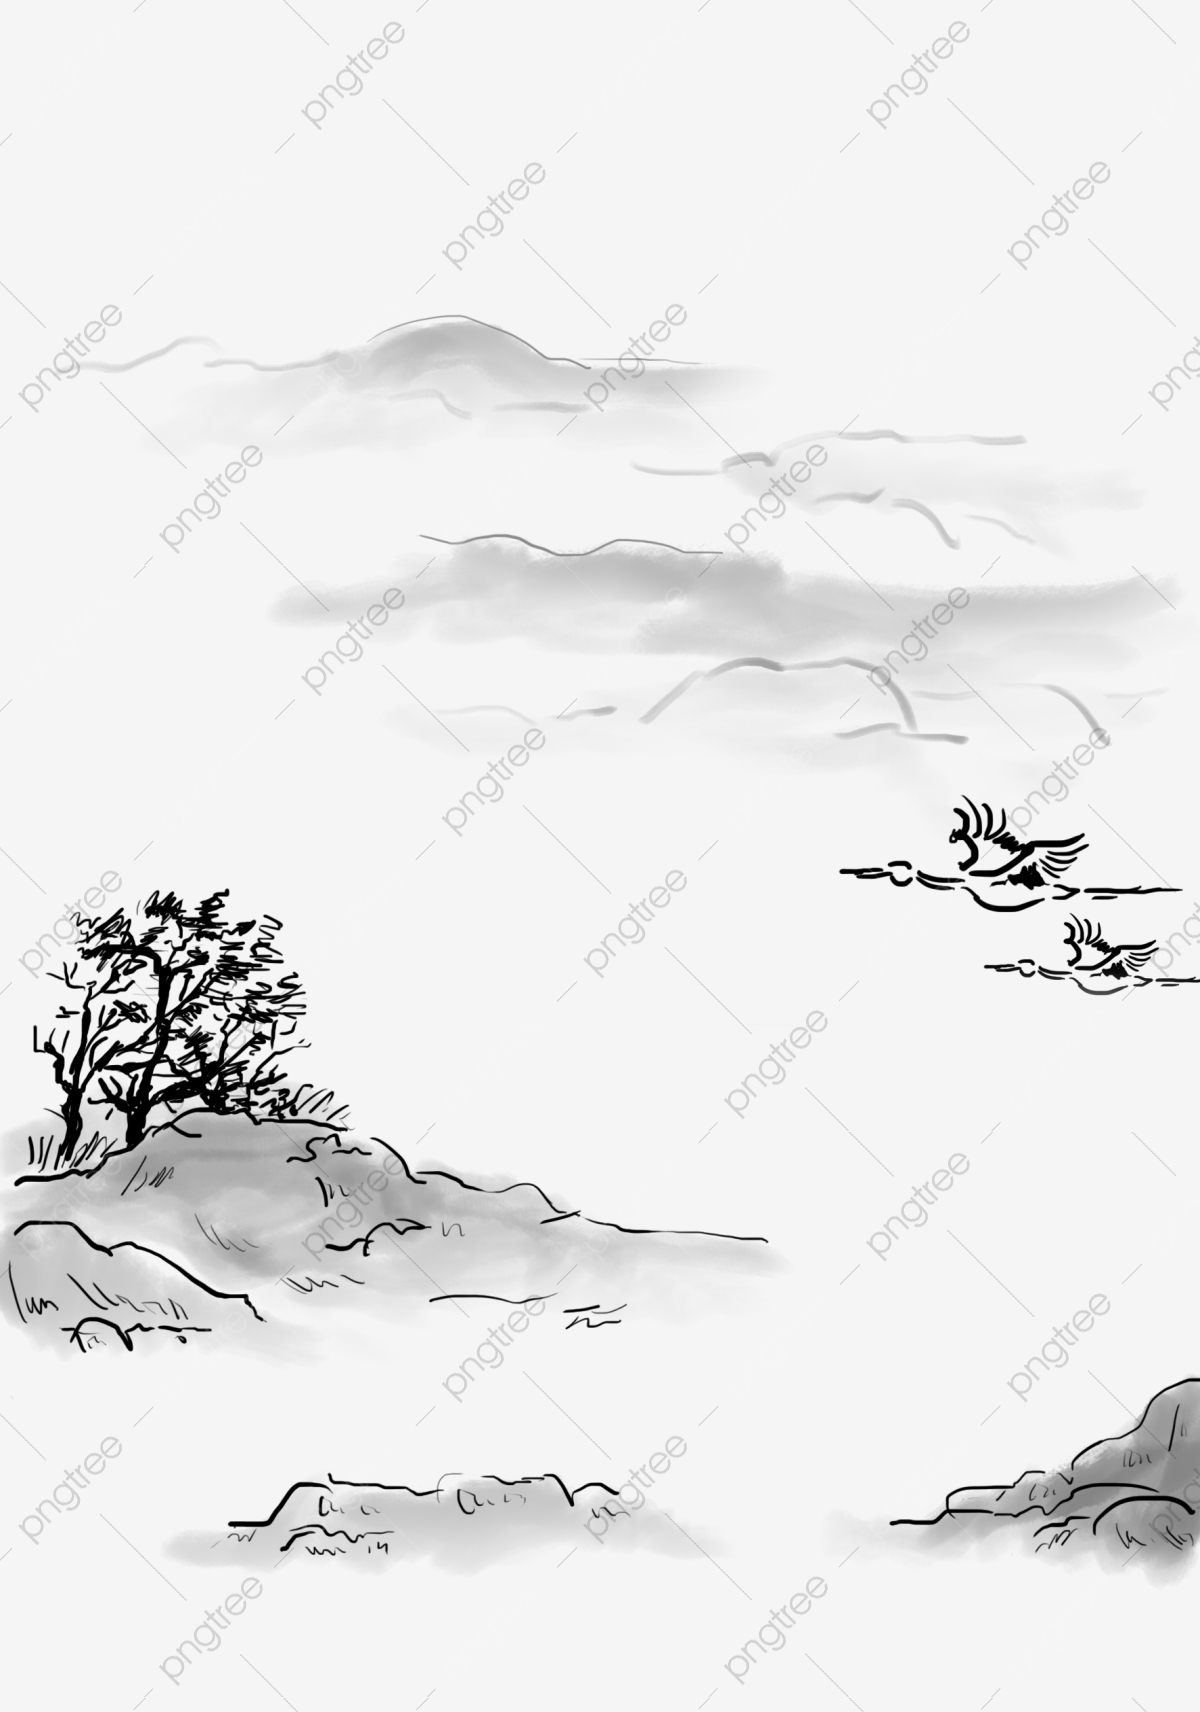 Chinese Style Black And White Landscape Ink Illustration Png Chinese Style Ink Style Ink Landscape Png Transparent Clipart Image And Psd File For Free Download